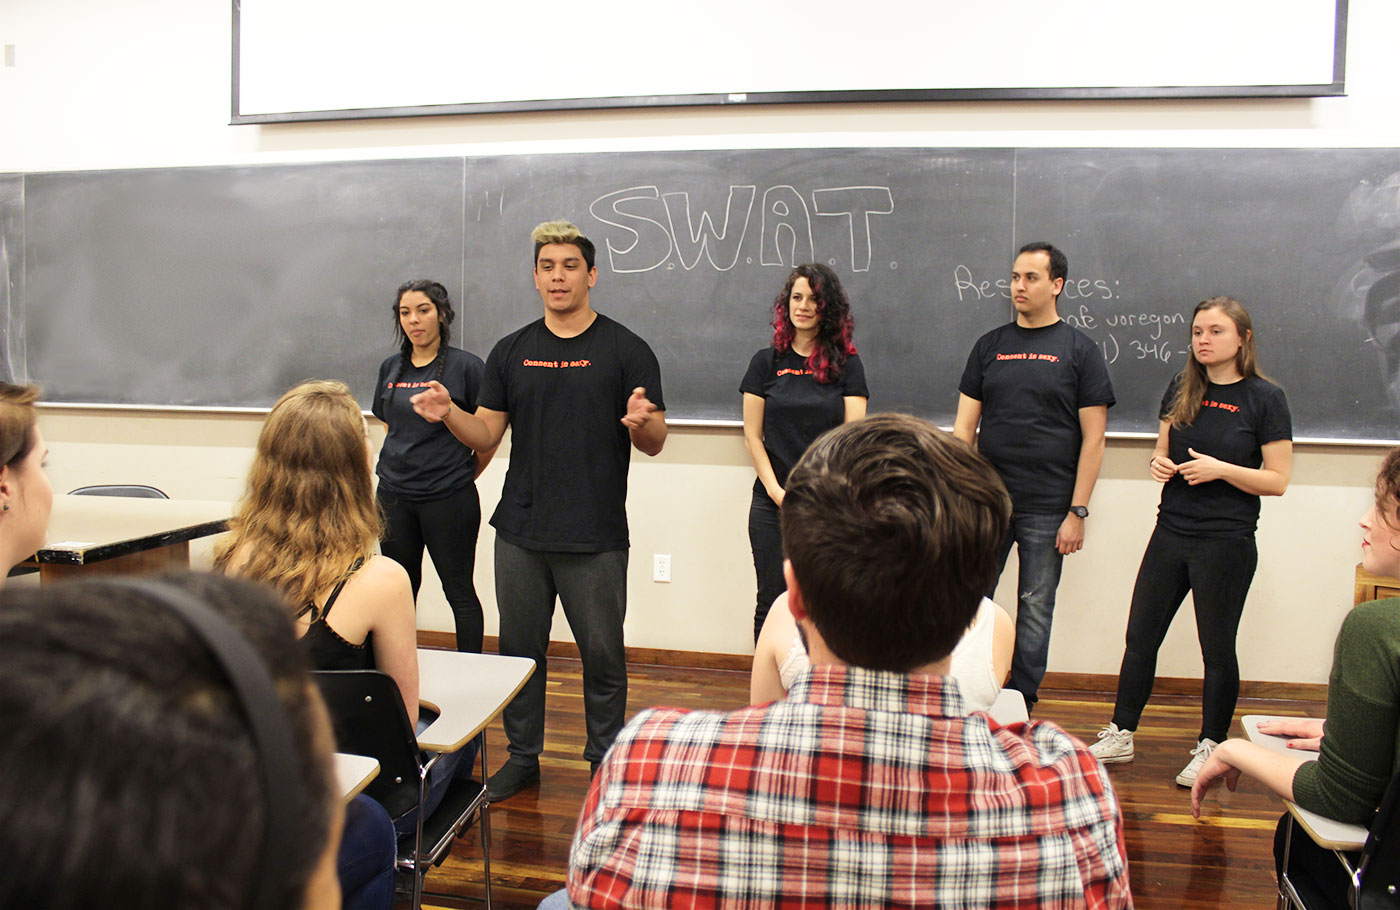 Five student from the Sexual Wellness Advocacy stand in front of a classroom teaching them about sexual wellness.